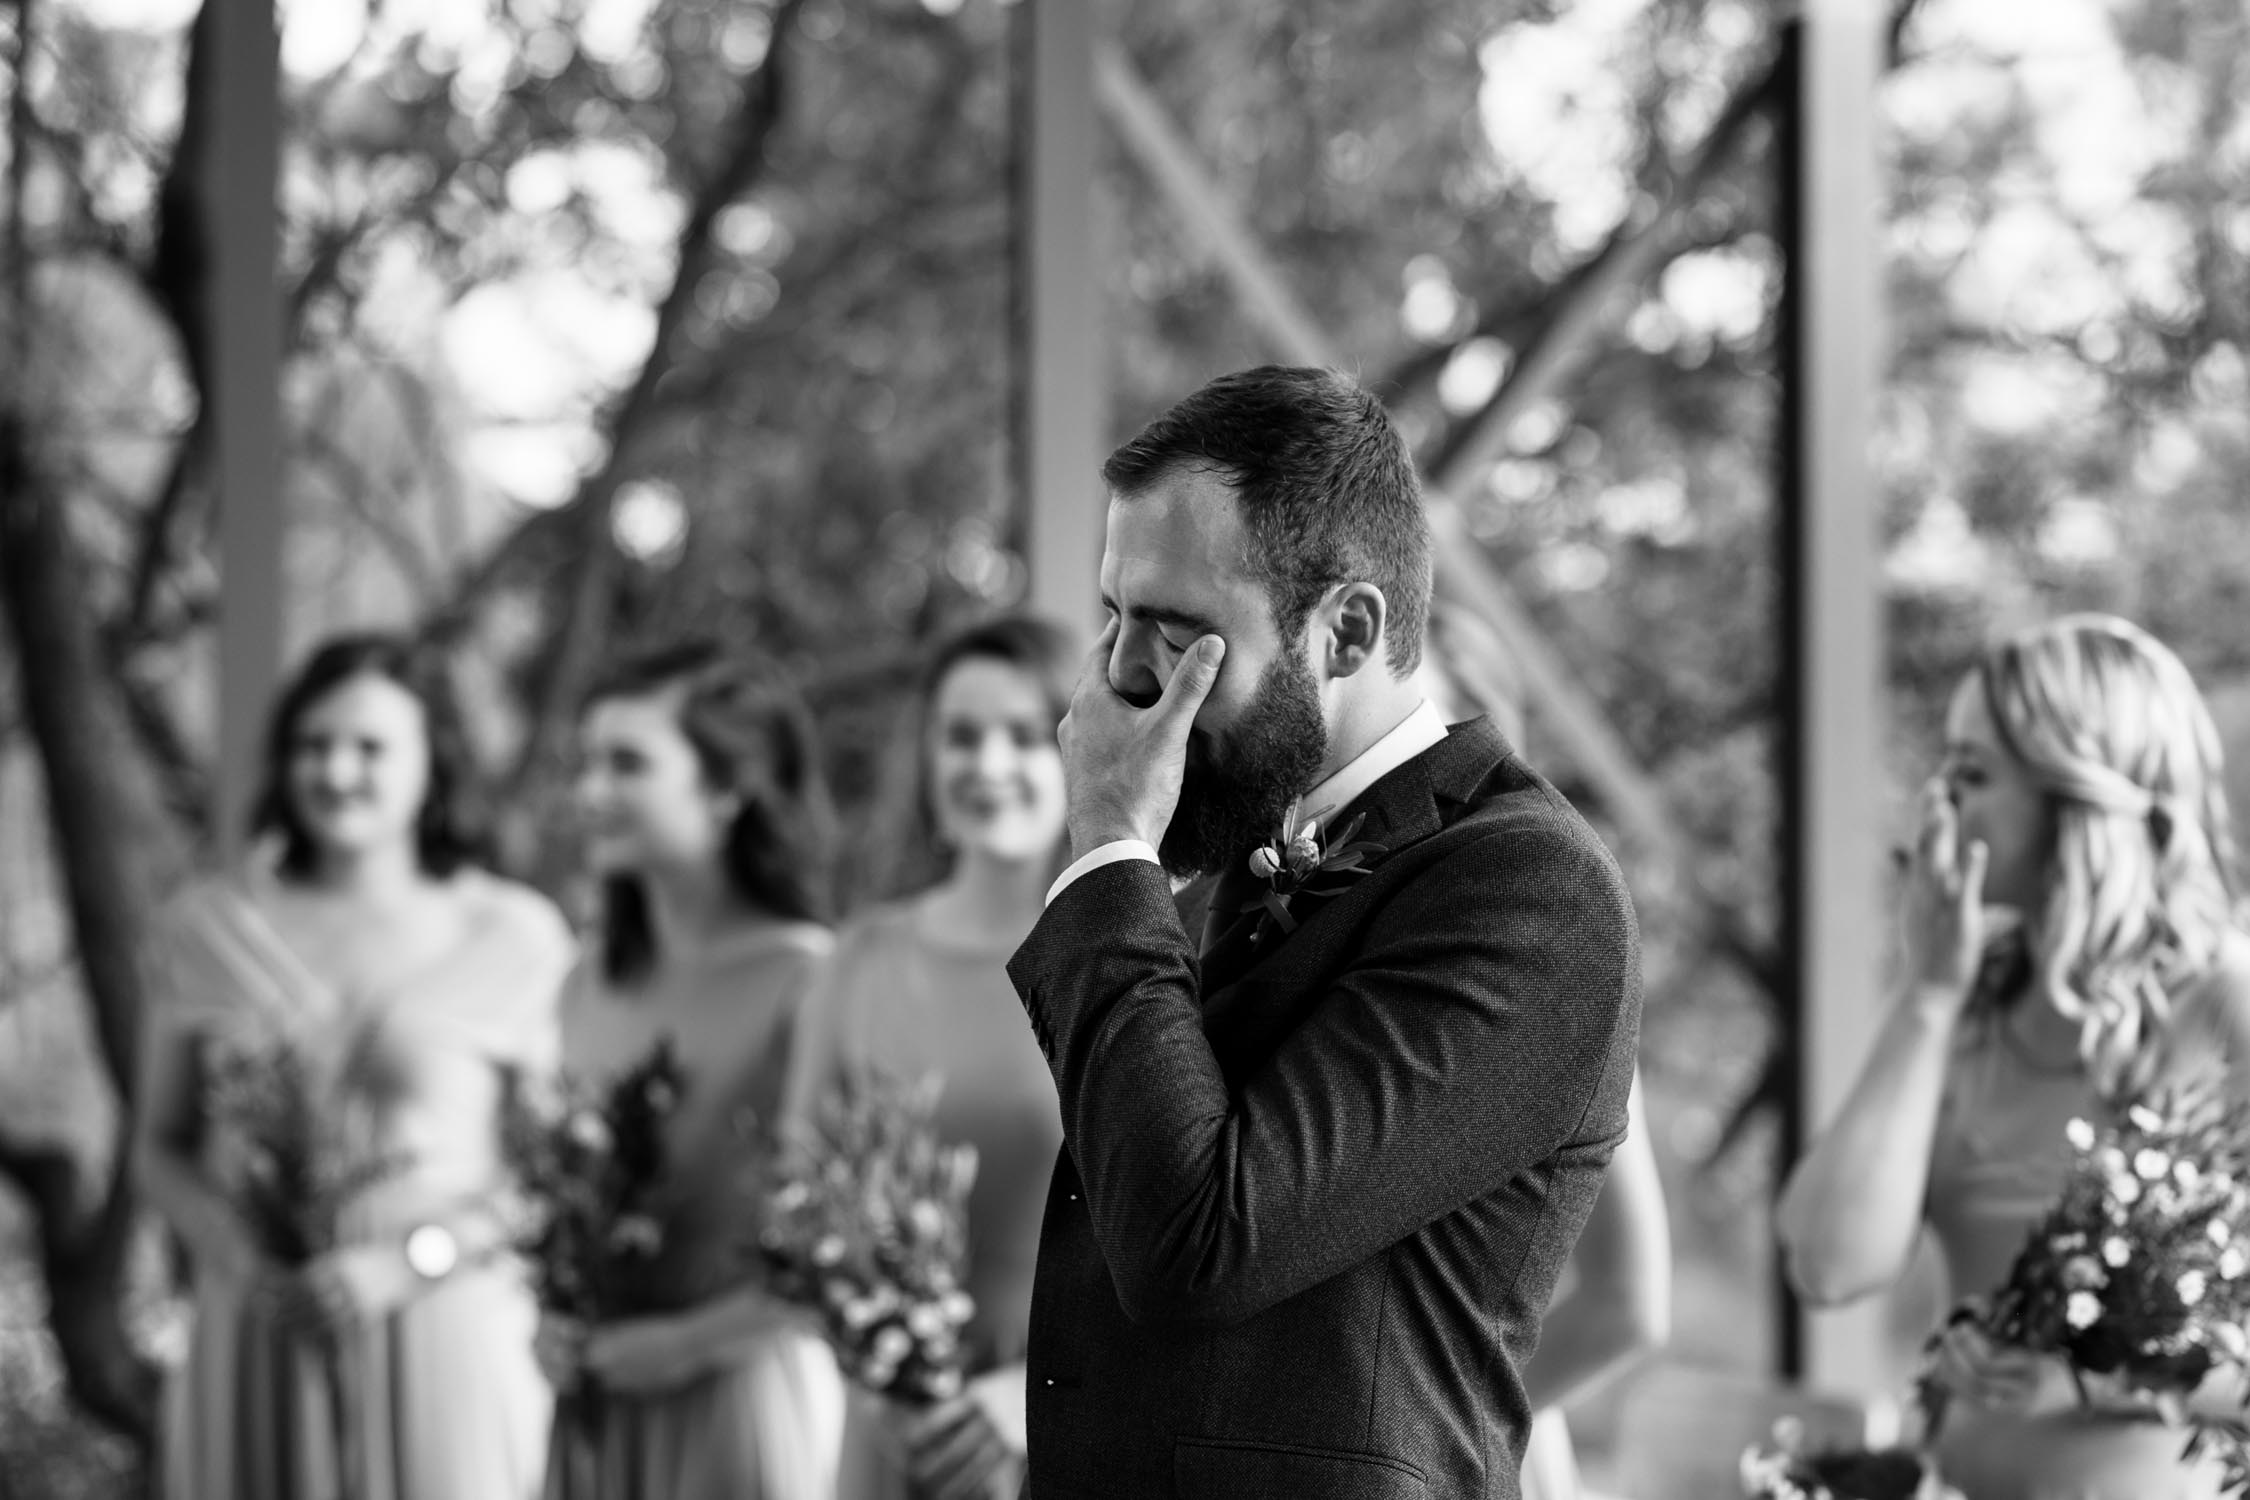 Groom's emotional reaction as he watches his bride walk down the aisle